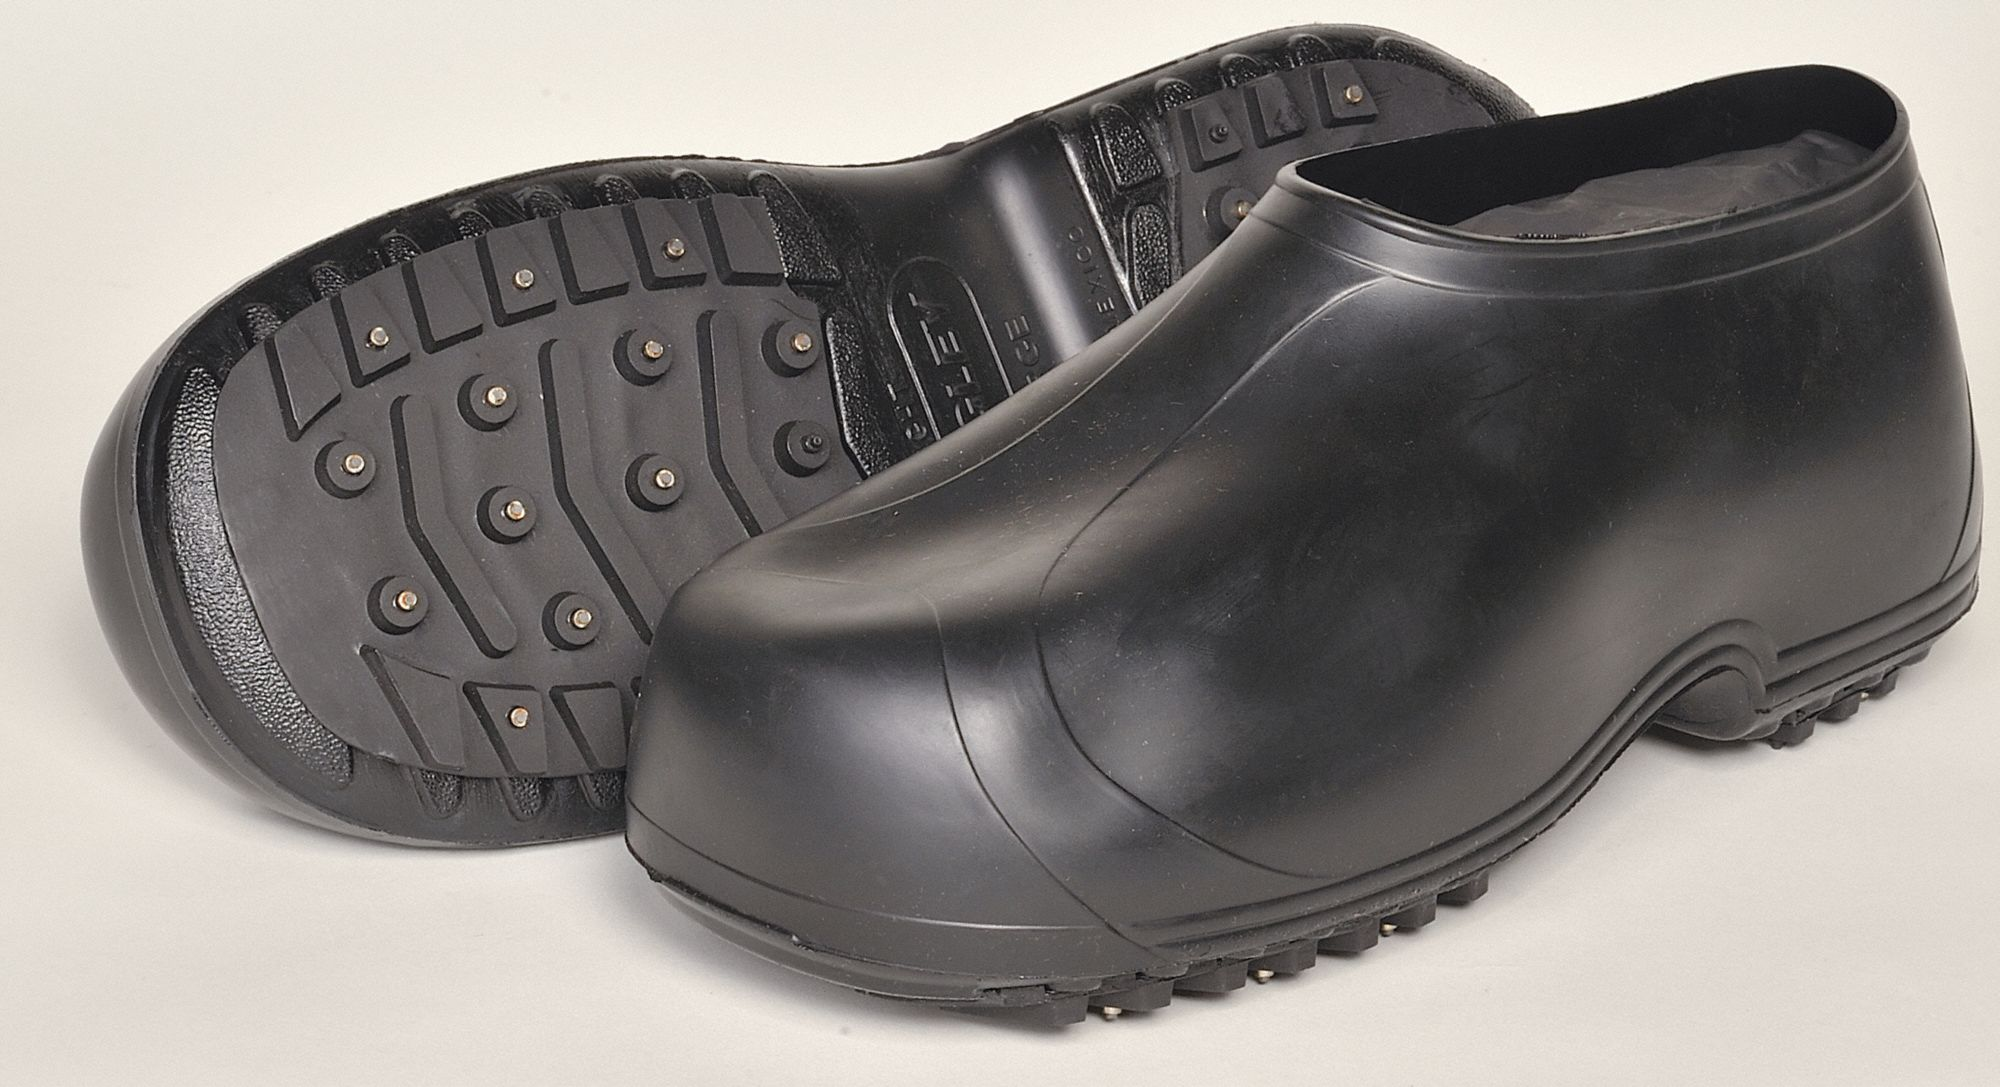 Tingley Ice Traction Overshoes, Rubber, 8-9.5, Pr 1350 at Sears.com